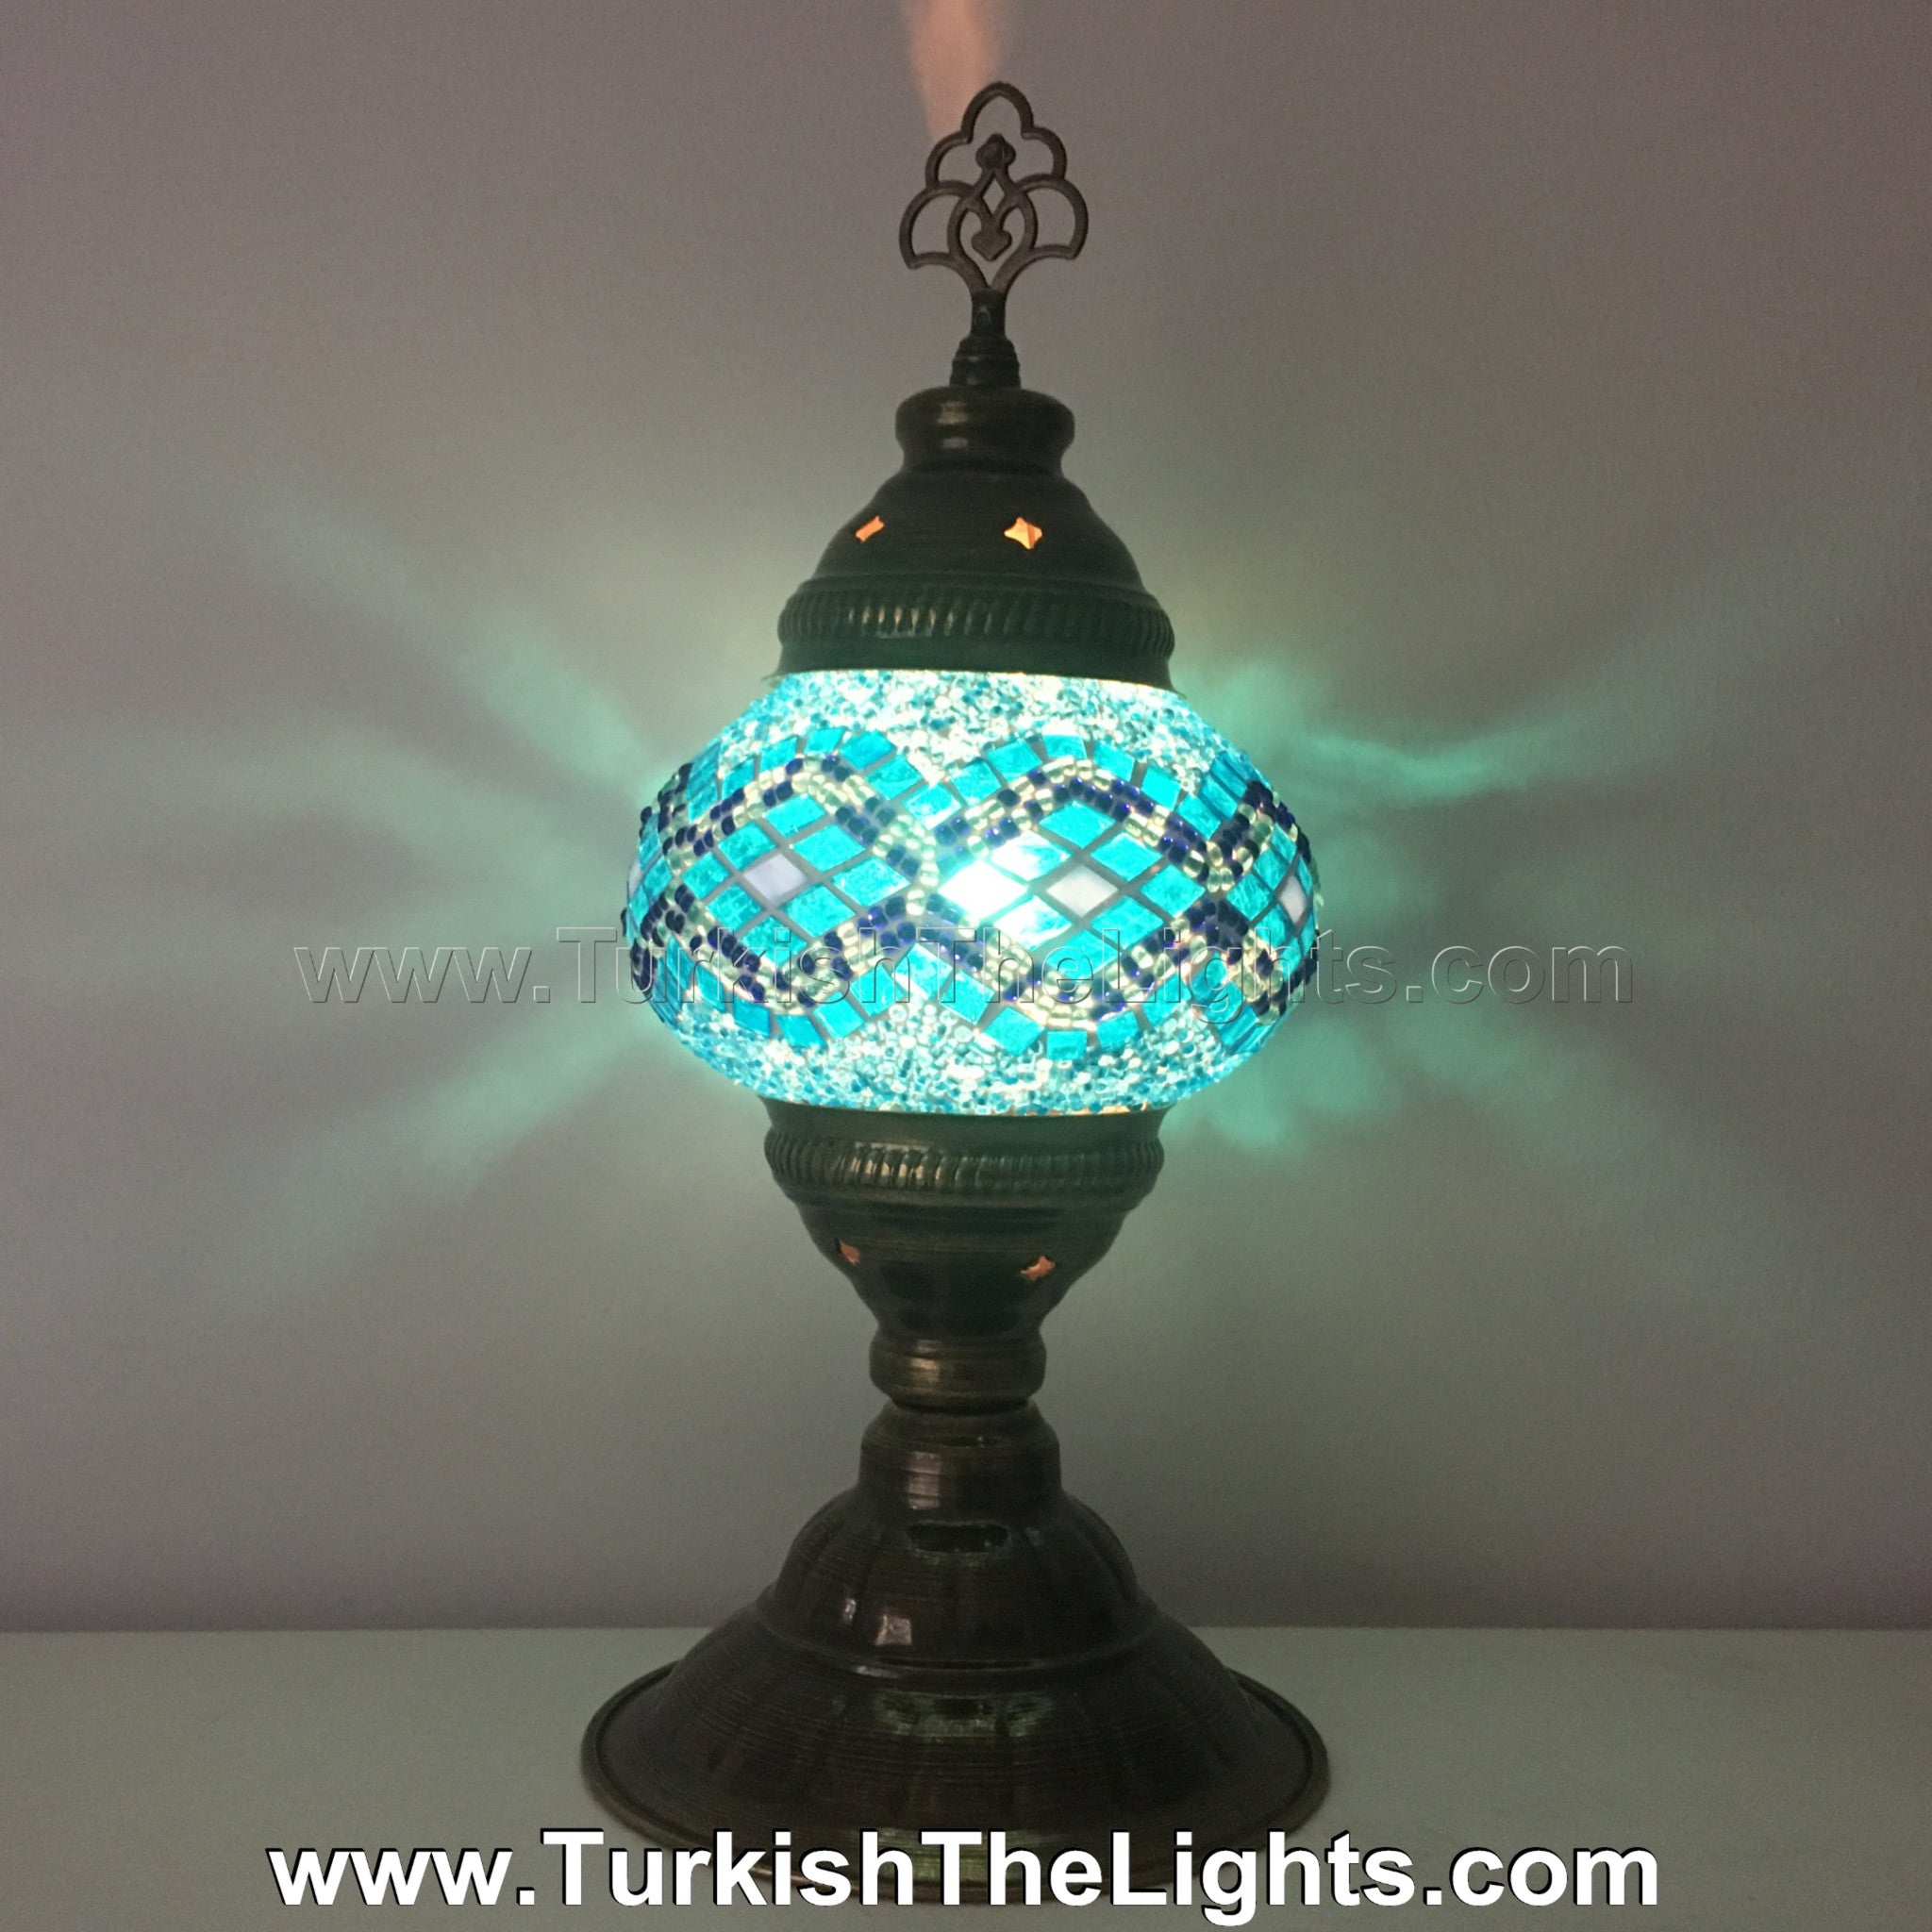 Turkish mosaic table lamp medium globe turkishlights turkish mosaic table lamp medium globe aloadofball Images